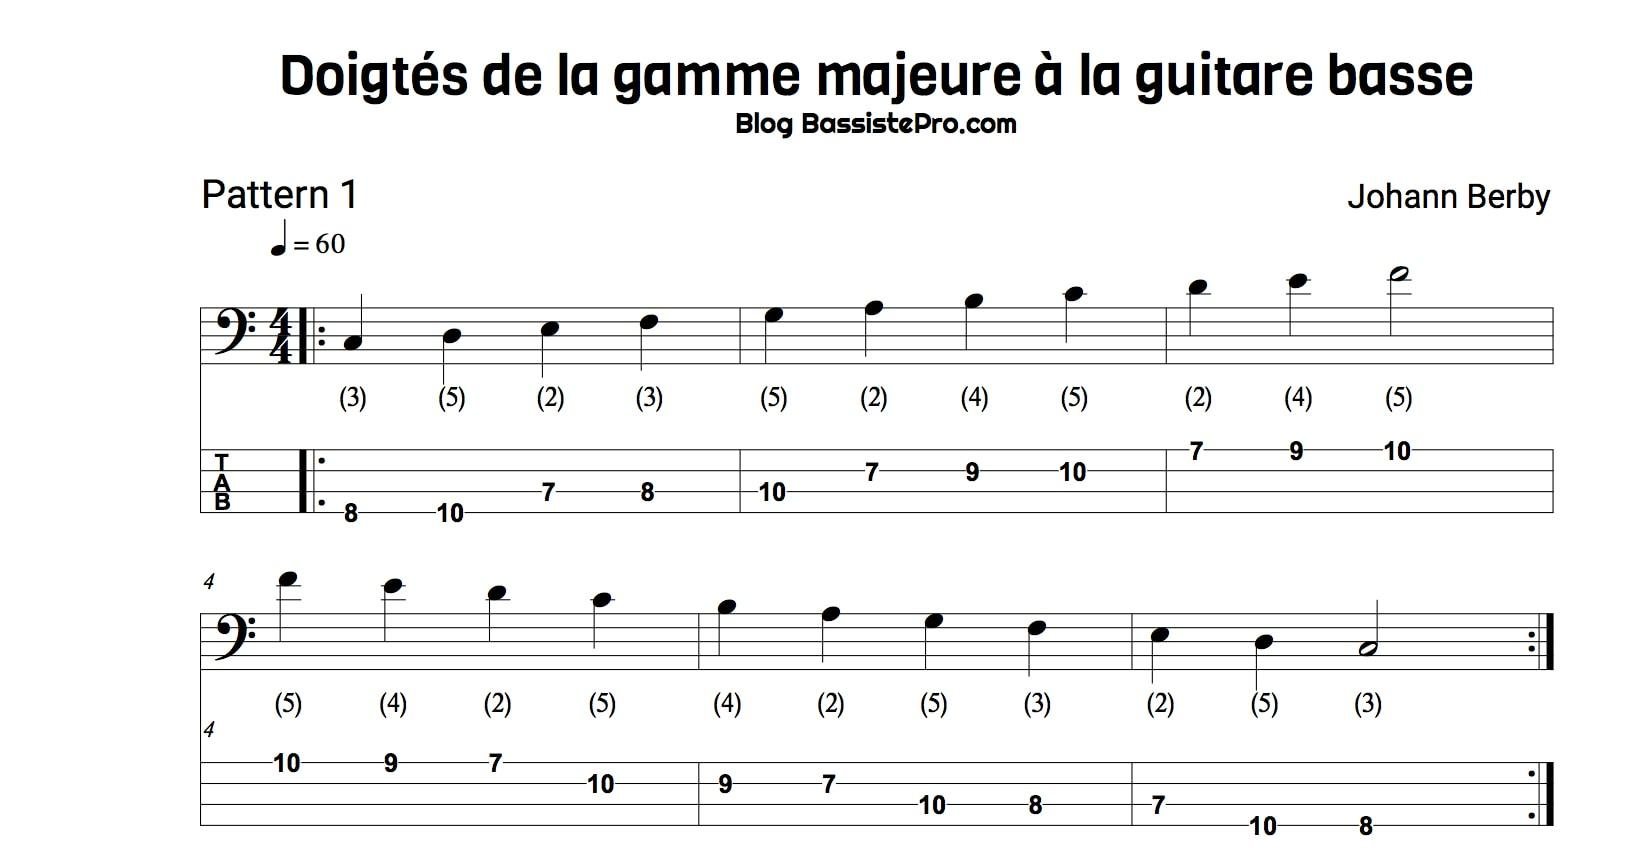 doigtes gamme majeure guitare basse pattern1 corde mi